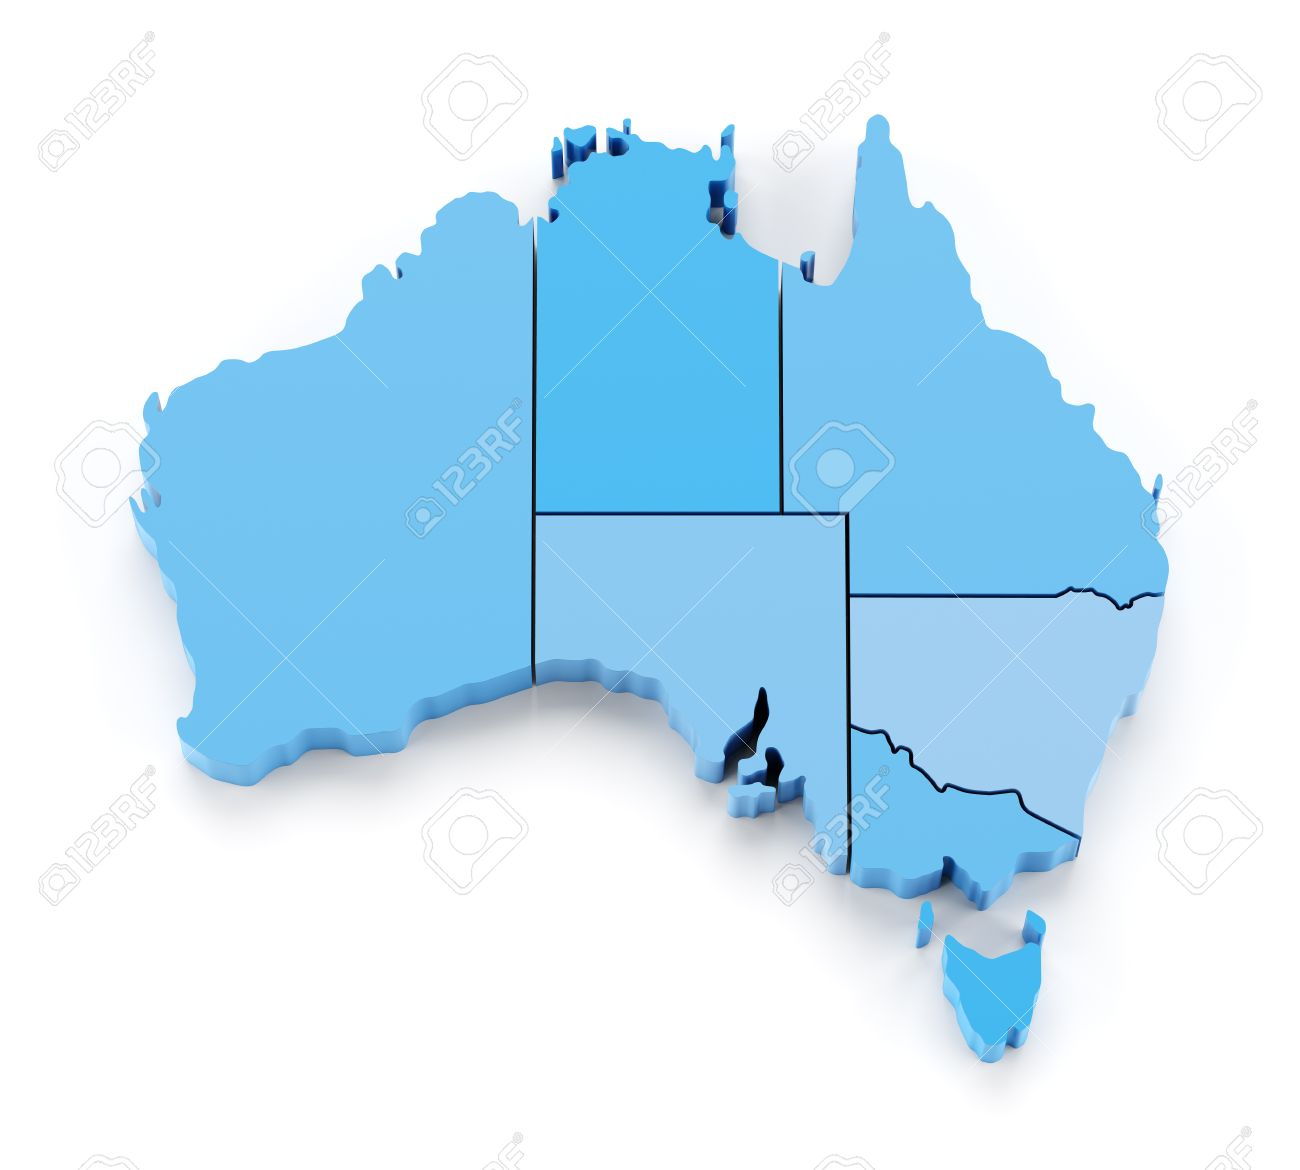 Extruded Map Of Australia With State Borders  3d Render Stock Photo     Extruded map of Australia with state borders  3d render Stock Photo    46718982